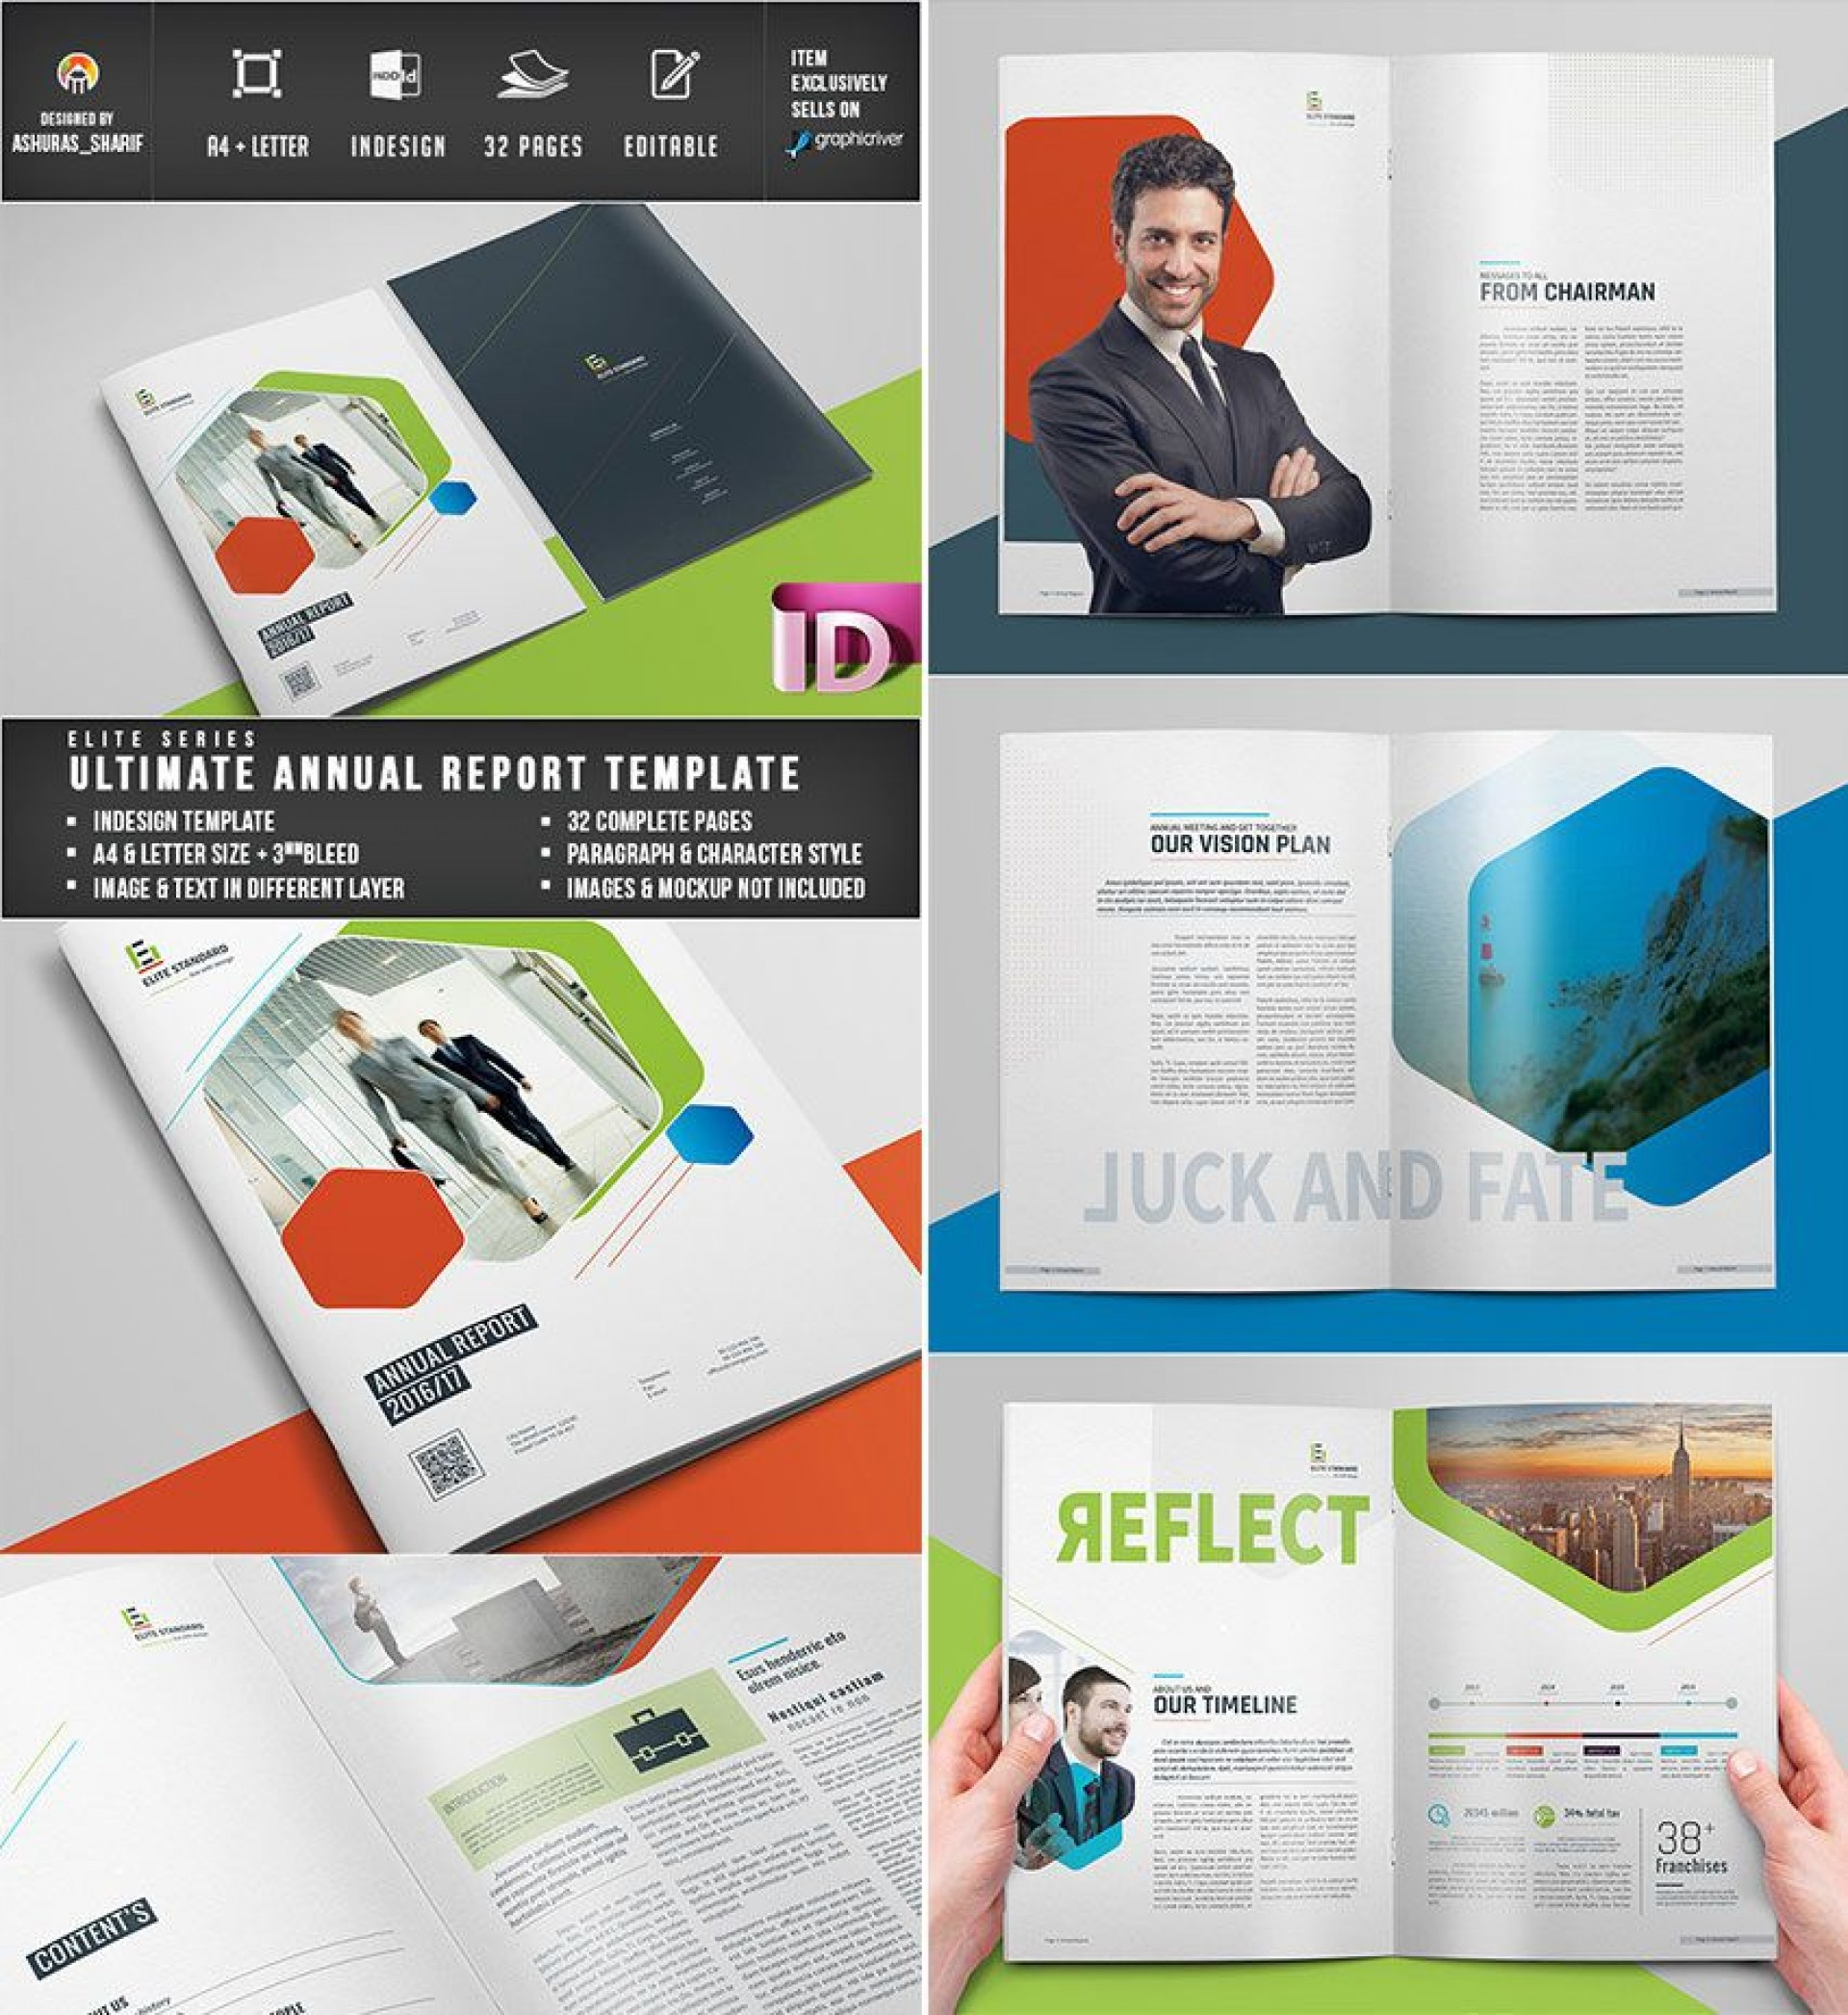 011 Unbelievable Free Annual Report Template Indesign Photo  Adobe Non Profit1920